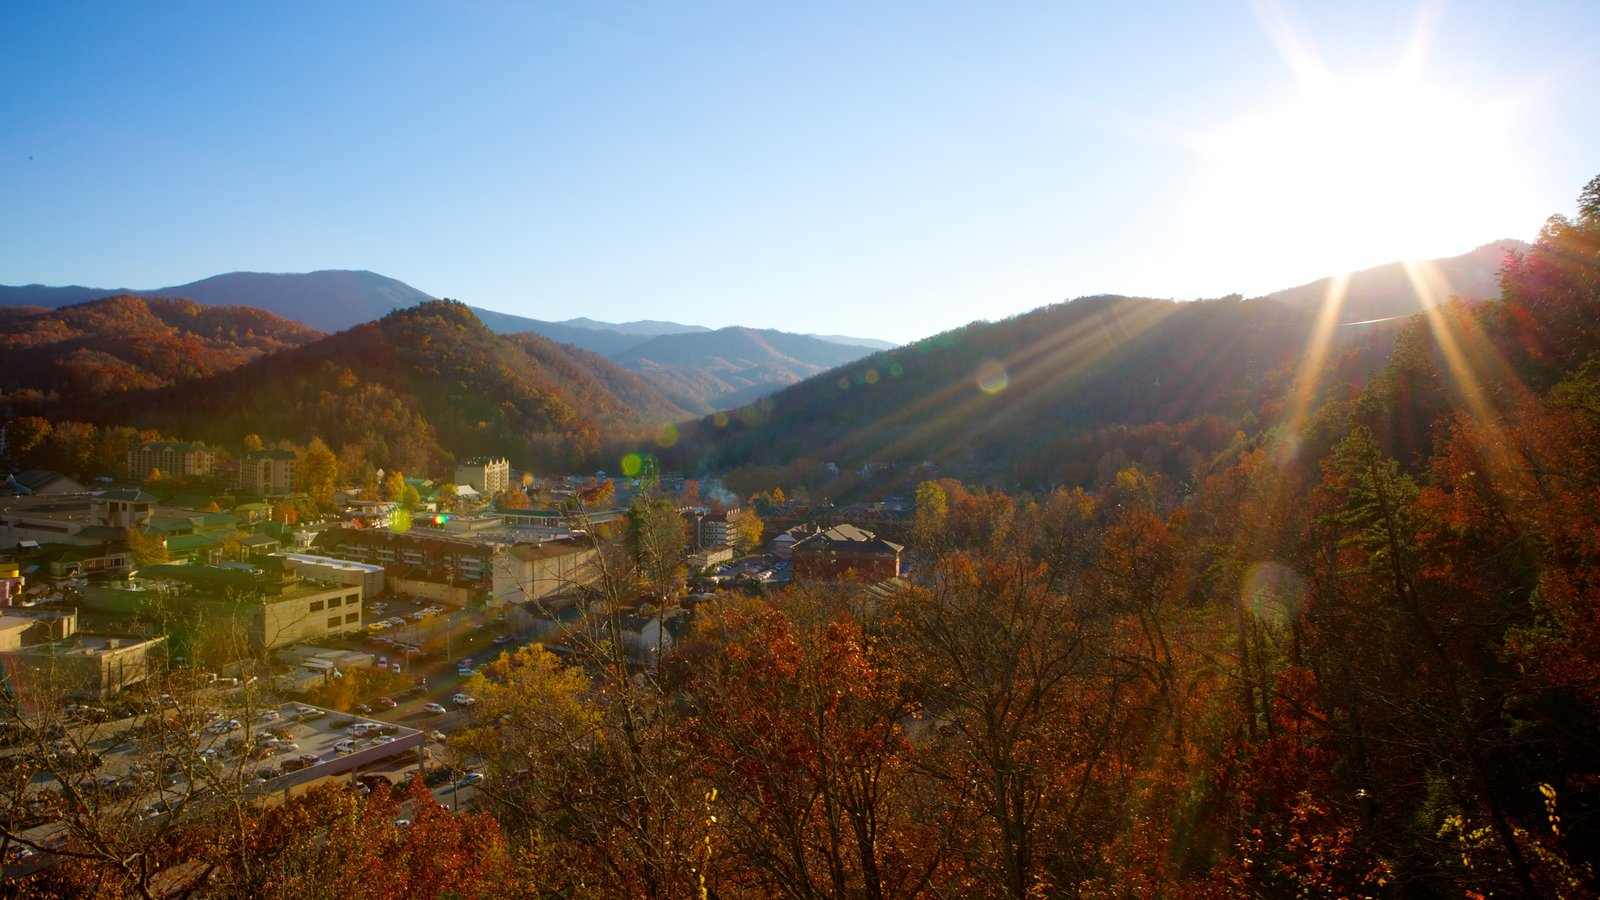 Landscape Pictures: View Images of Tennessee